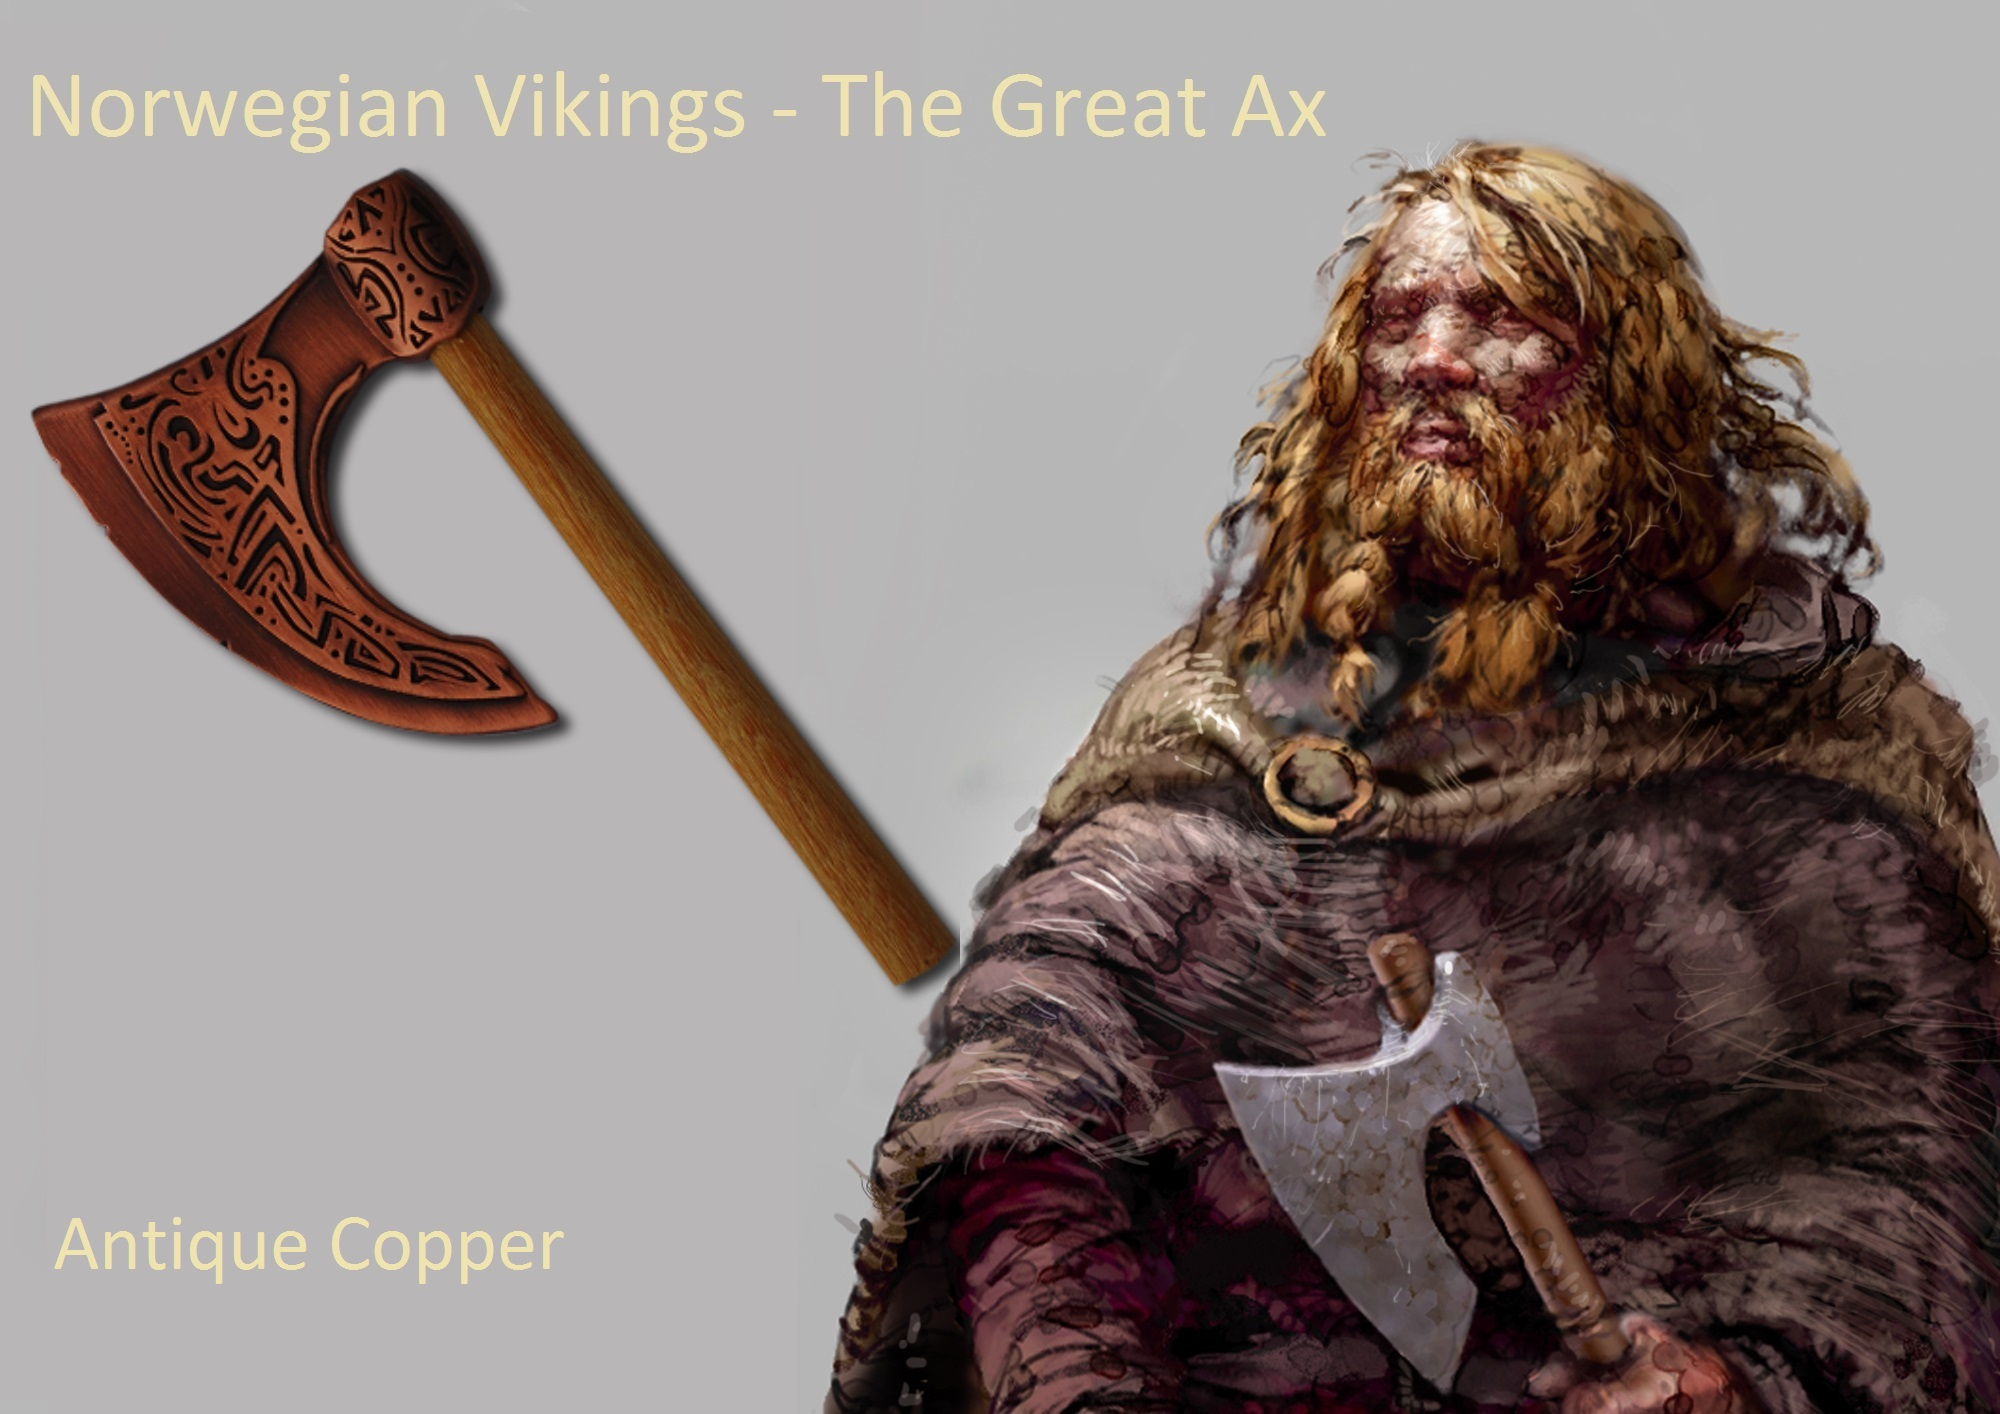 The Great Ax - Antique Copper.jpg